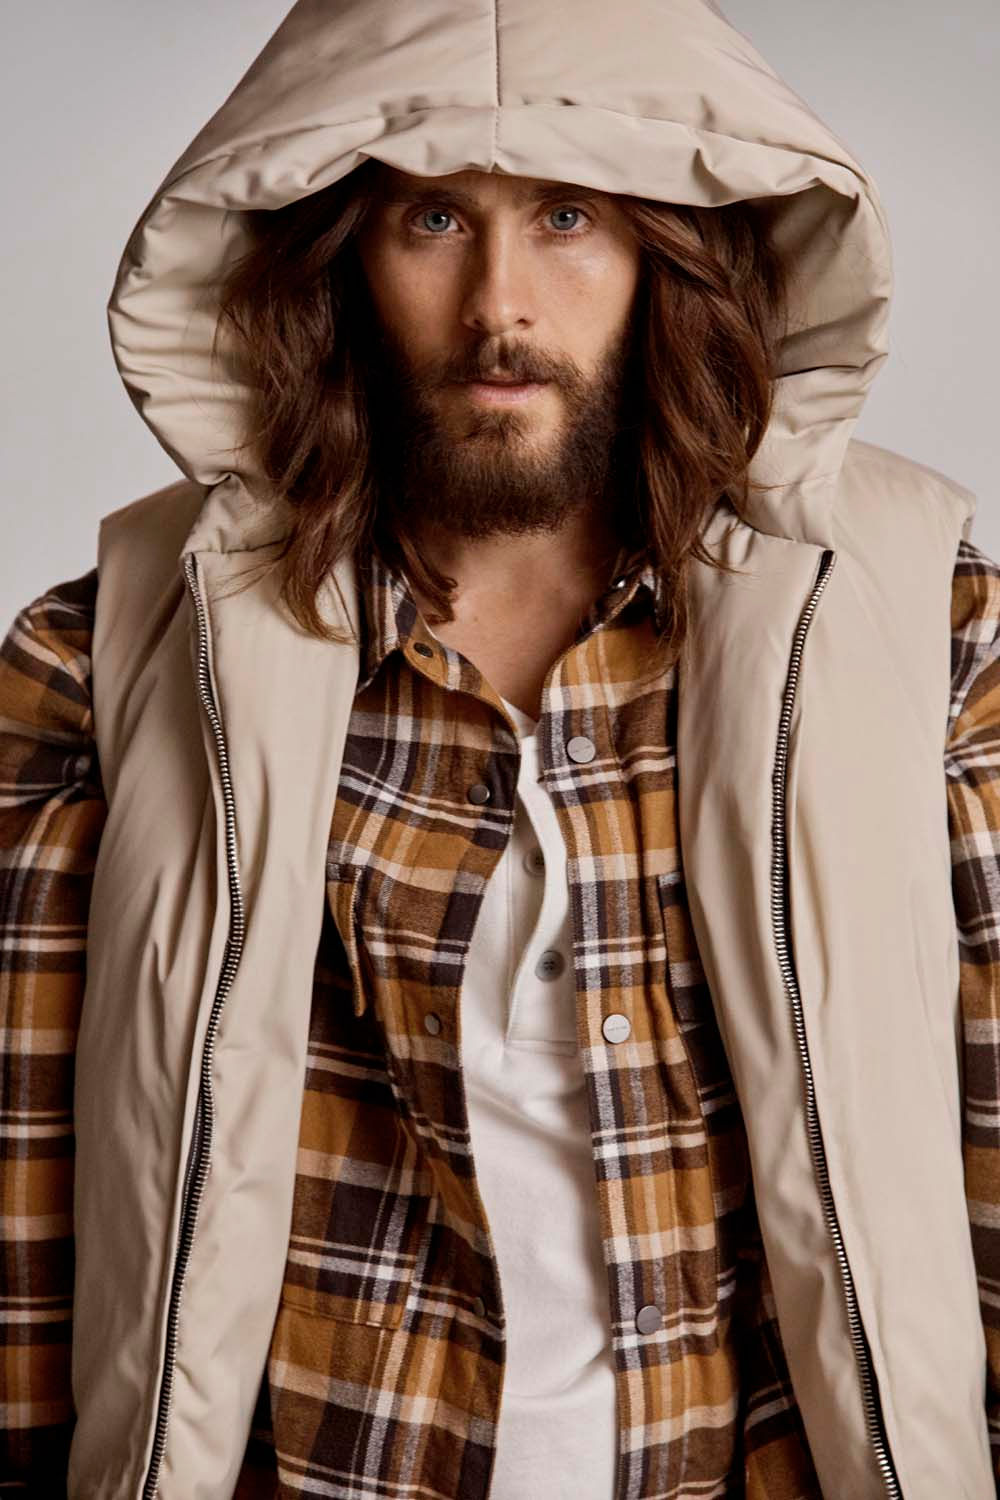 https_%2F%2Fhypebeast.com%2Fimage%2F2018%2F09%2Ffear-of-god-6-sixth-collection-jared-leto-nike-42.jpg